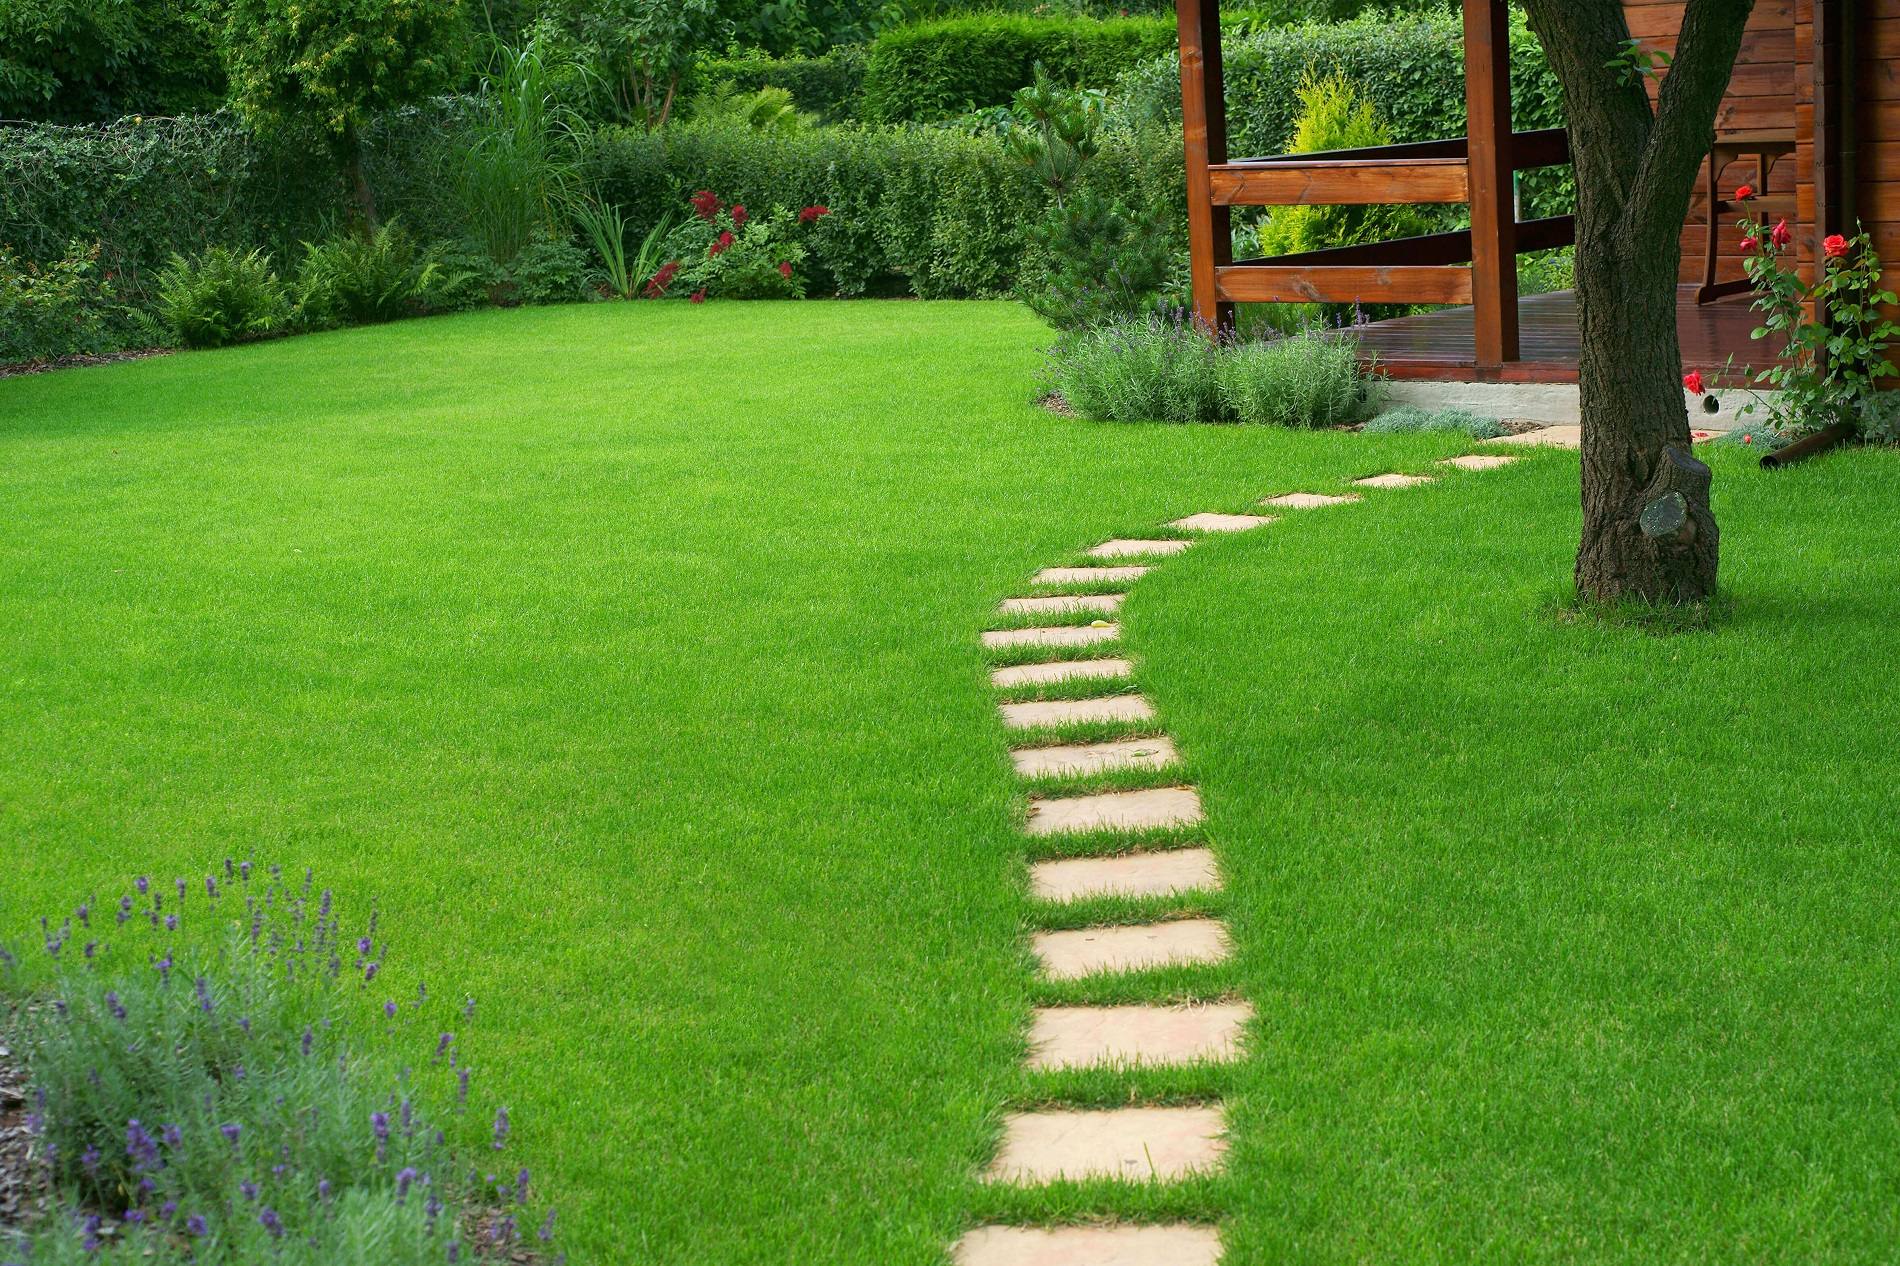 Lawn care and lawn construction Essex & Hertfordshire